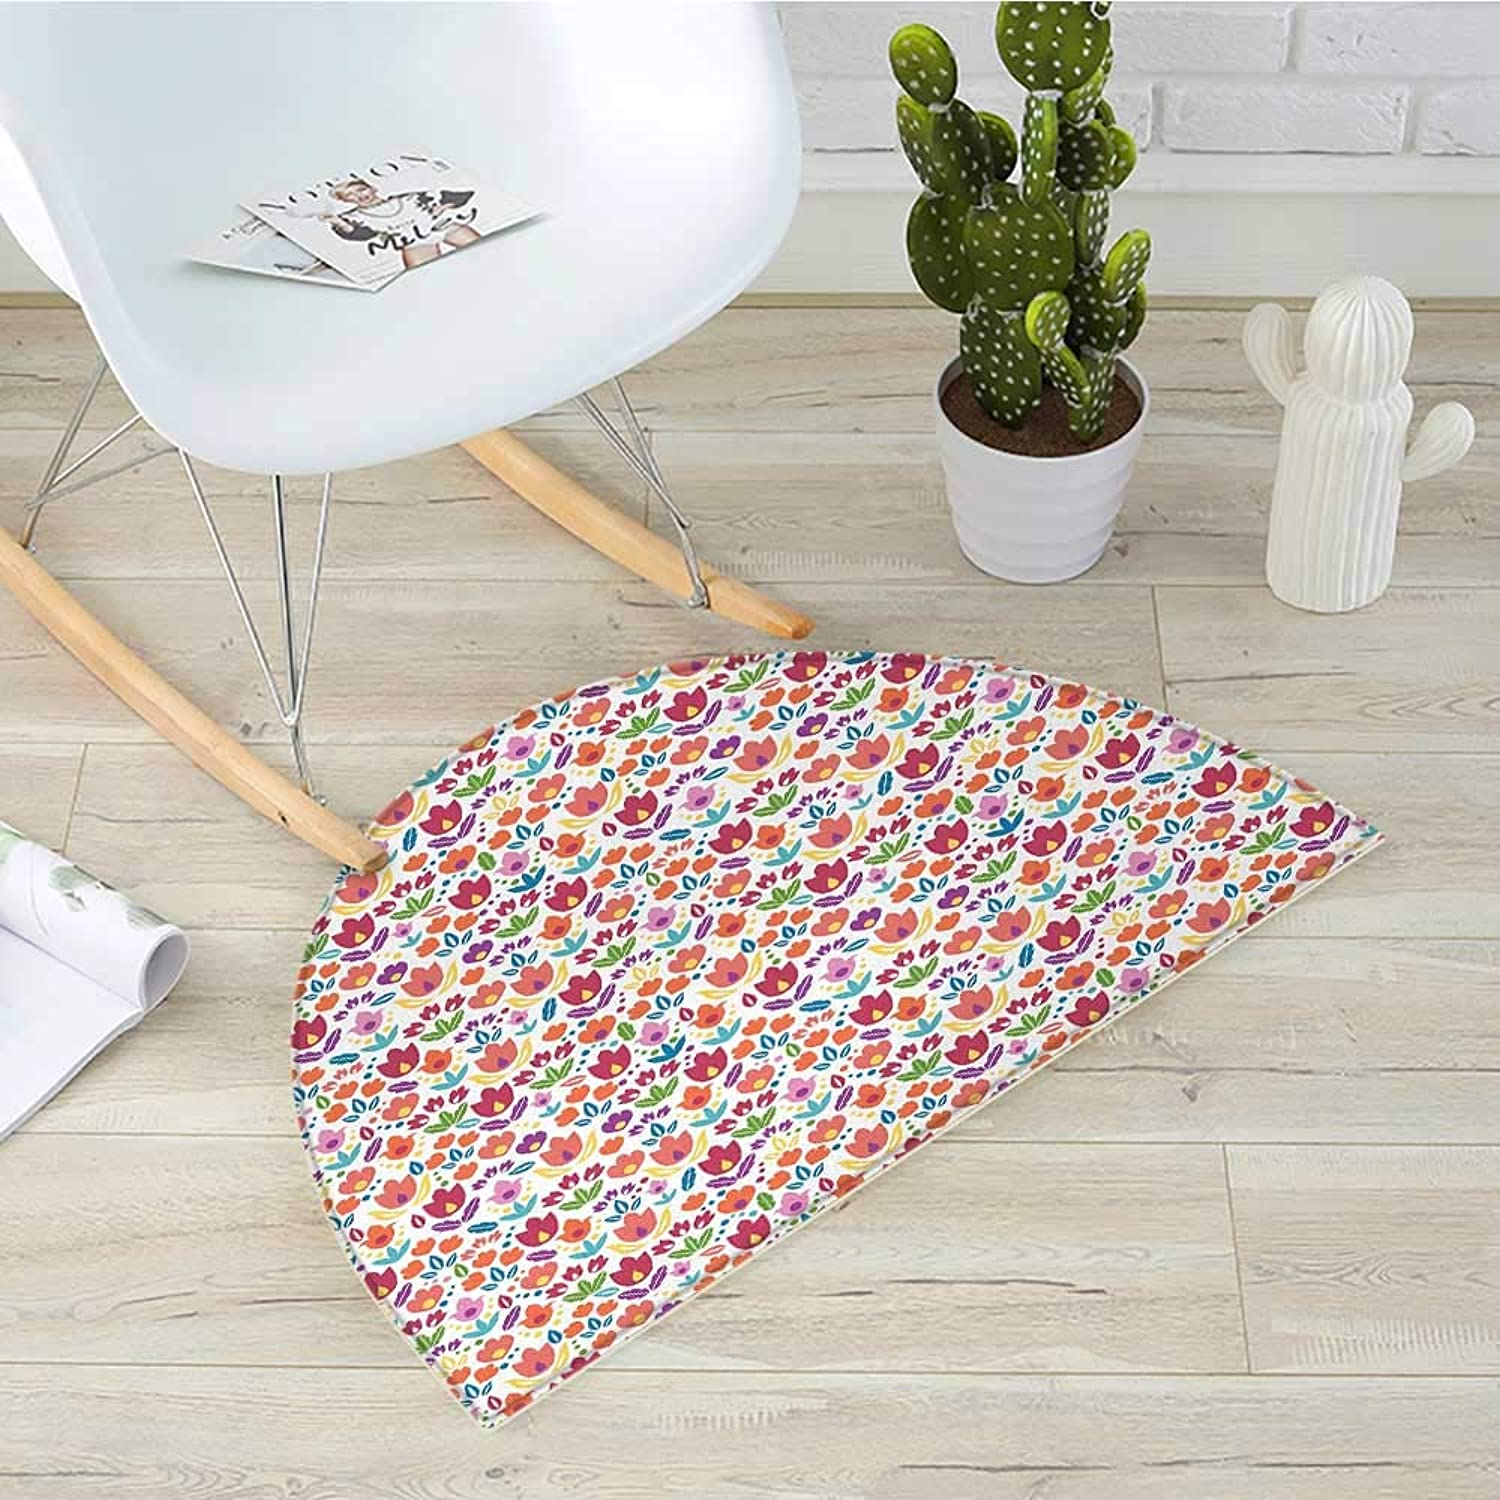 Dutch Semicircular CushionBlooming Tulips Rural Country Abstract Floral Illustration Ornamental Petals Foliage Entry Door Mat H 43.3  xD 64.9  Multicolor